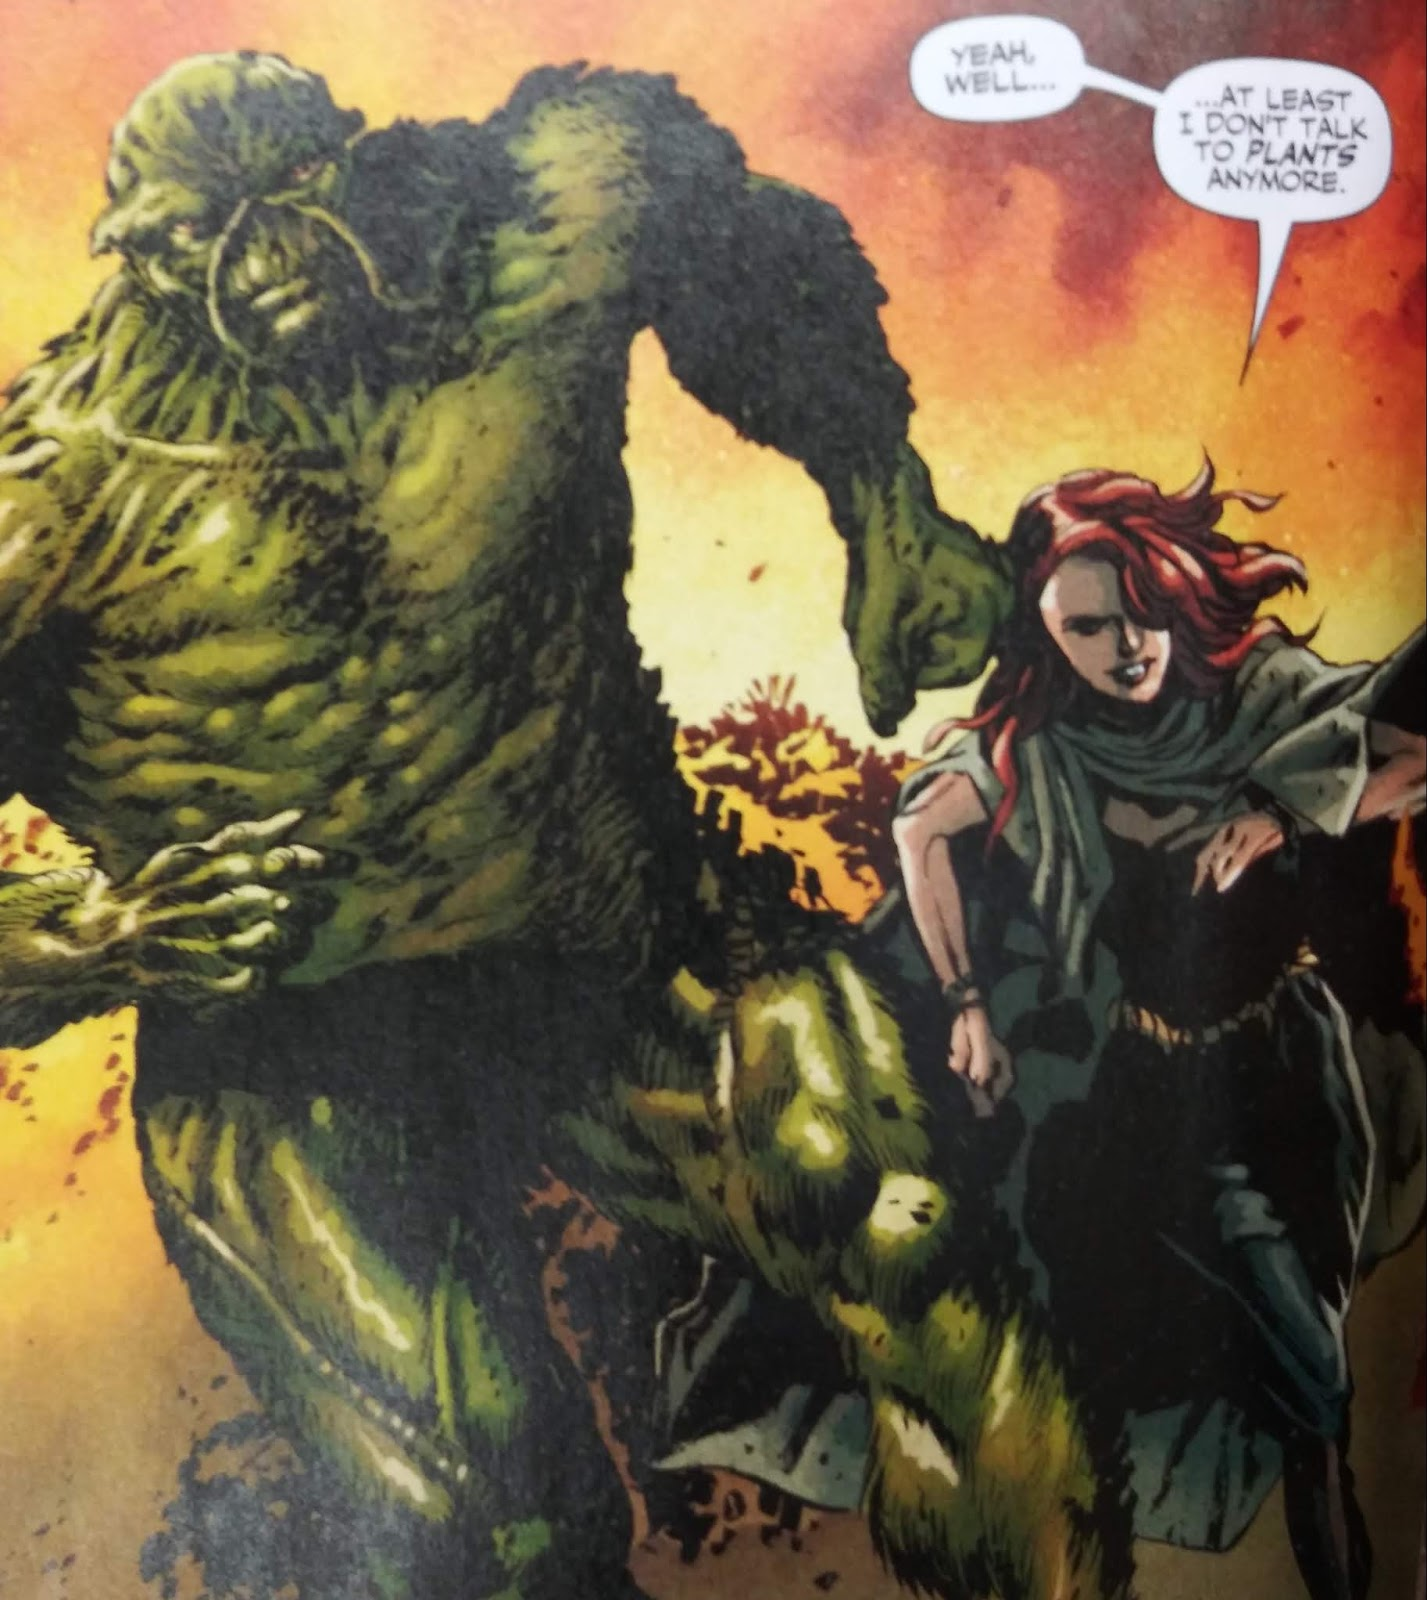 Swamp Thing #1 (Walmart 100 Page Comic Giant!) Review - GWW